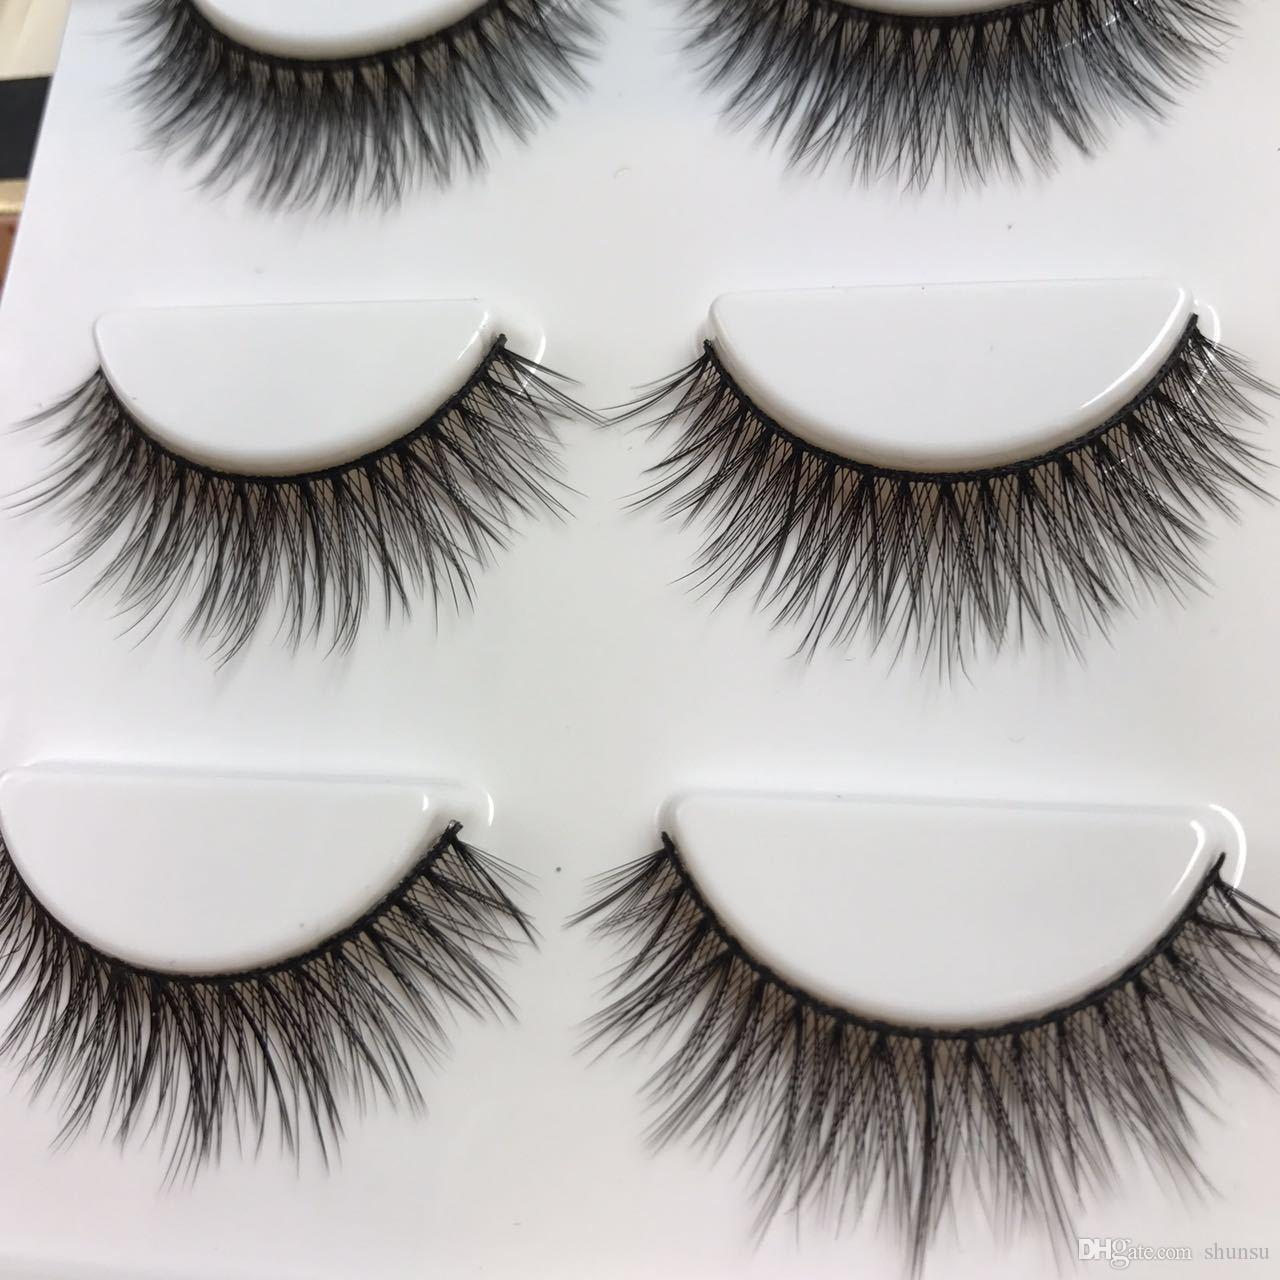 Cotton Stems 3D Stereo False Eyelashes Nature Long Crisscross Messy Dense Eye Lashes Winged Party Smoke Makeup Fake Eyelashes